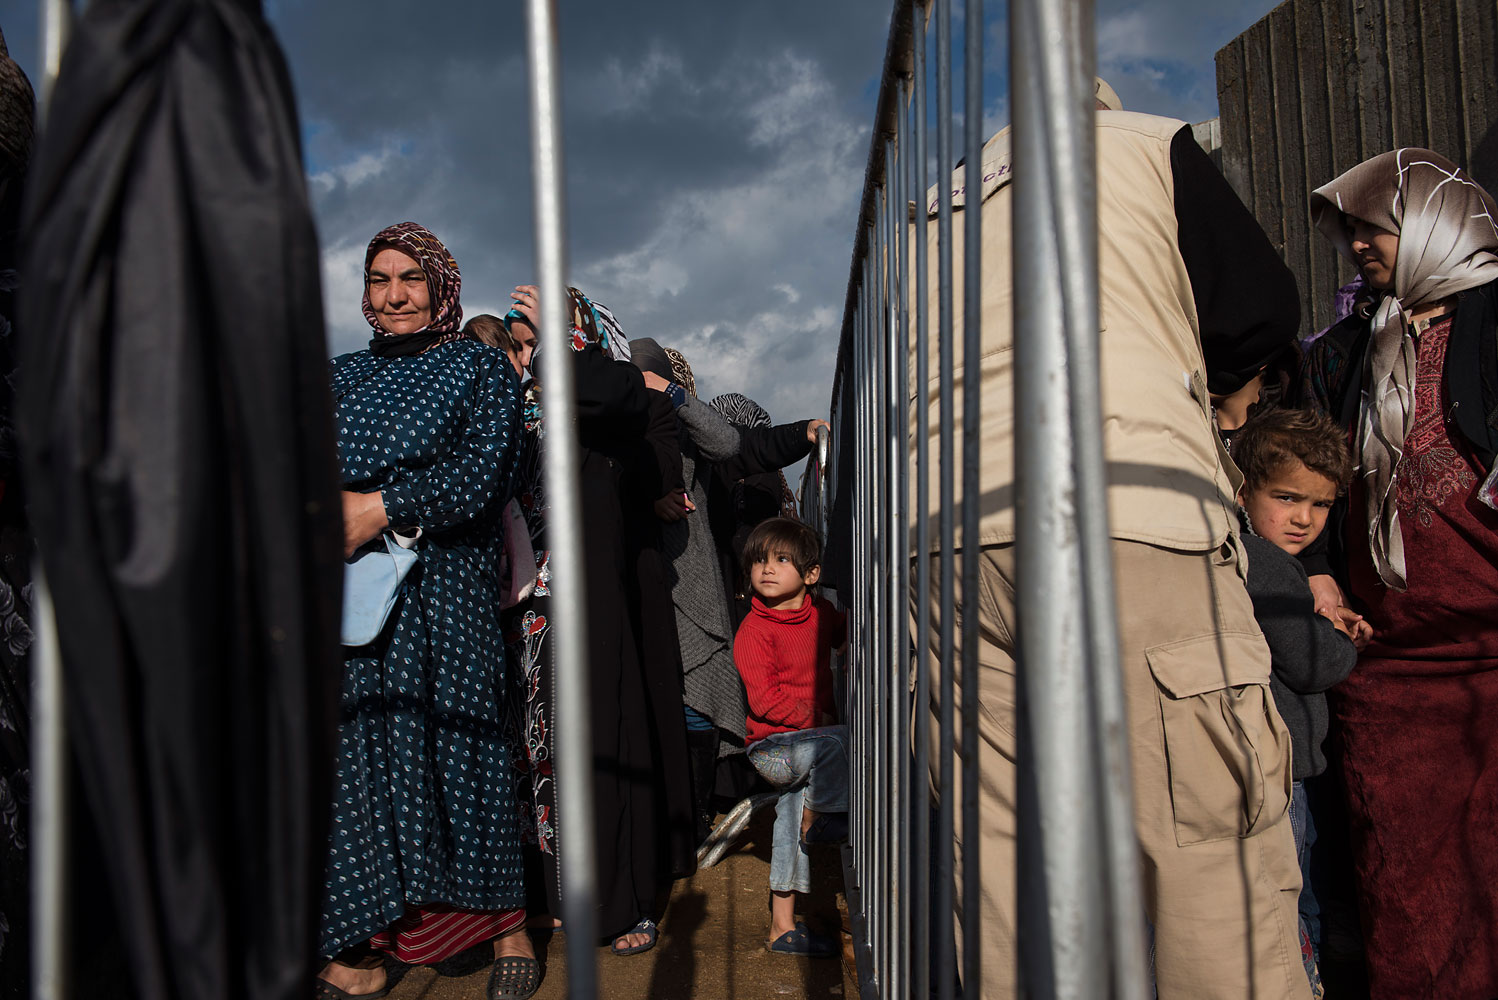 Syrian refugees line up to register or renew their registration at the UNHCR compound in Tripoli, in North Lebanon.